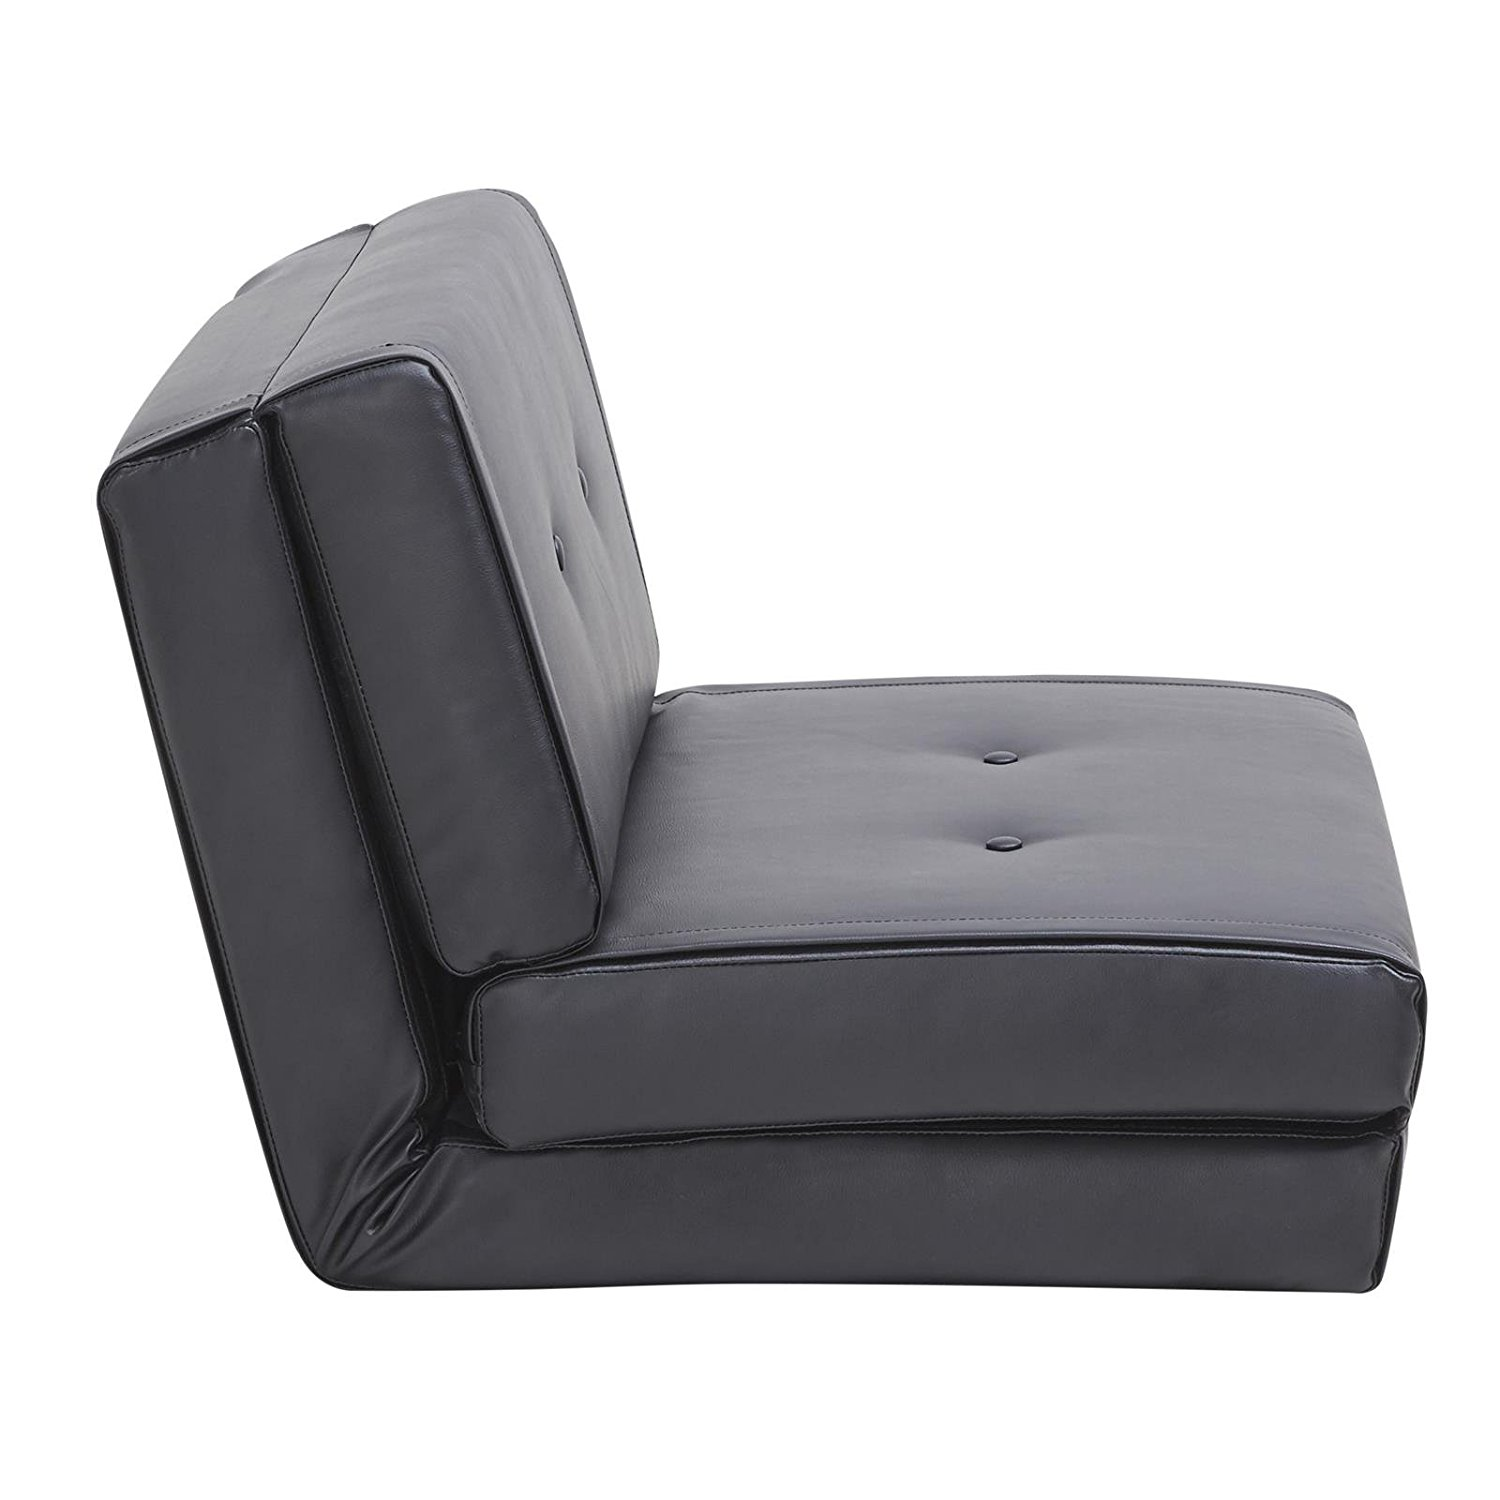 Sessel Als Schlafsofa Relax Sessel Mit Schlaffunktion Zuhause Image Idee